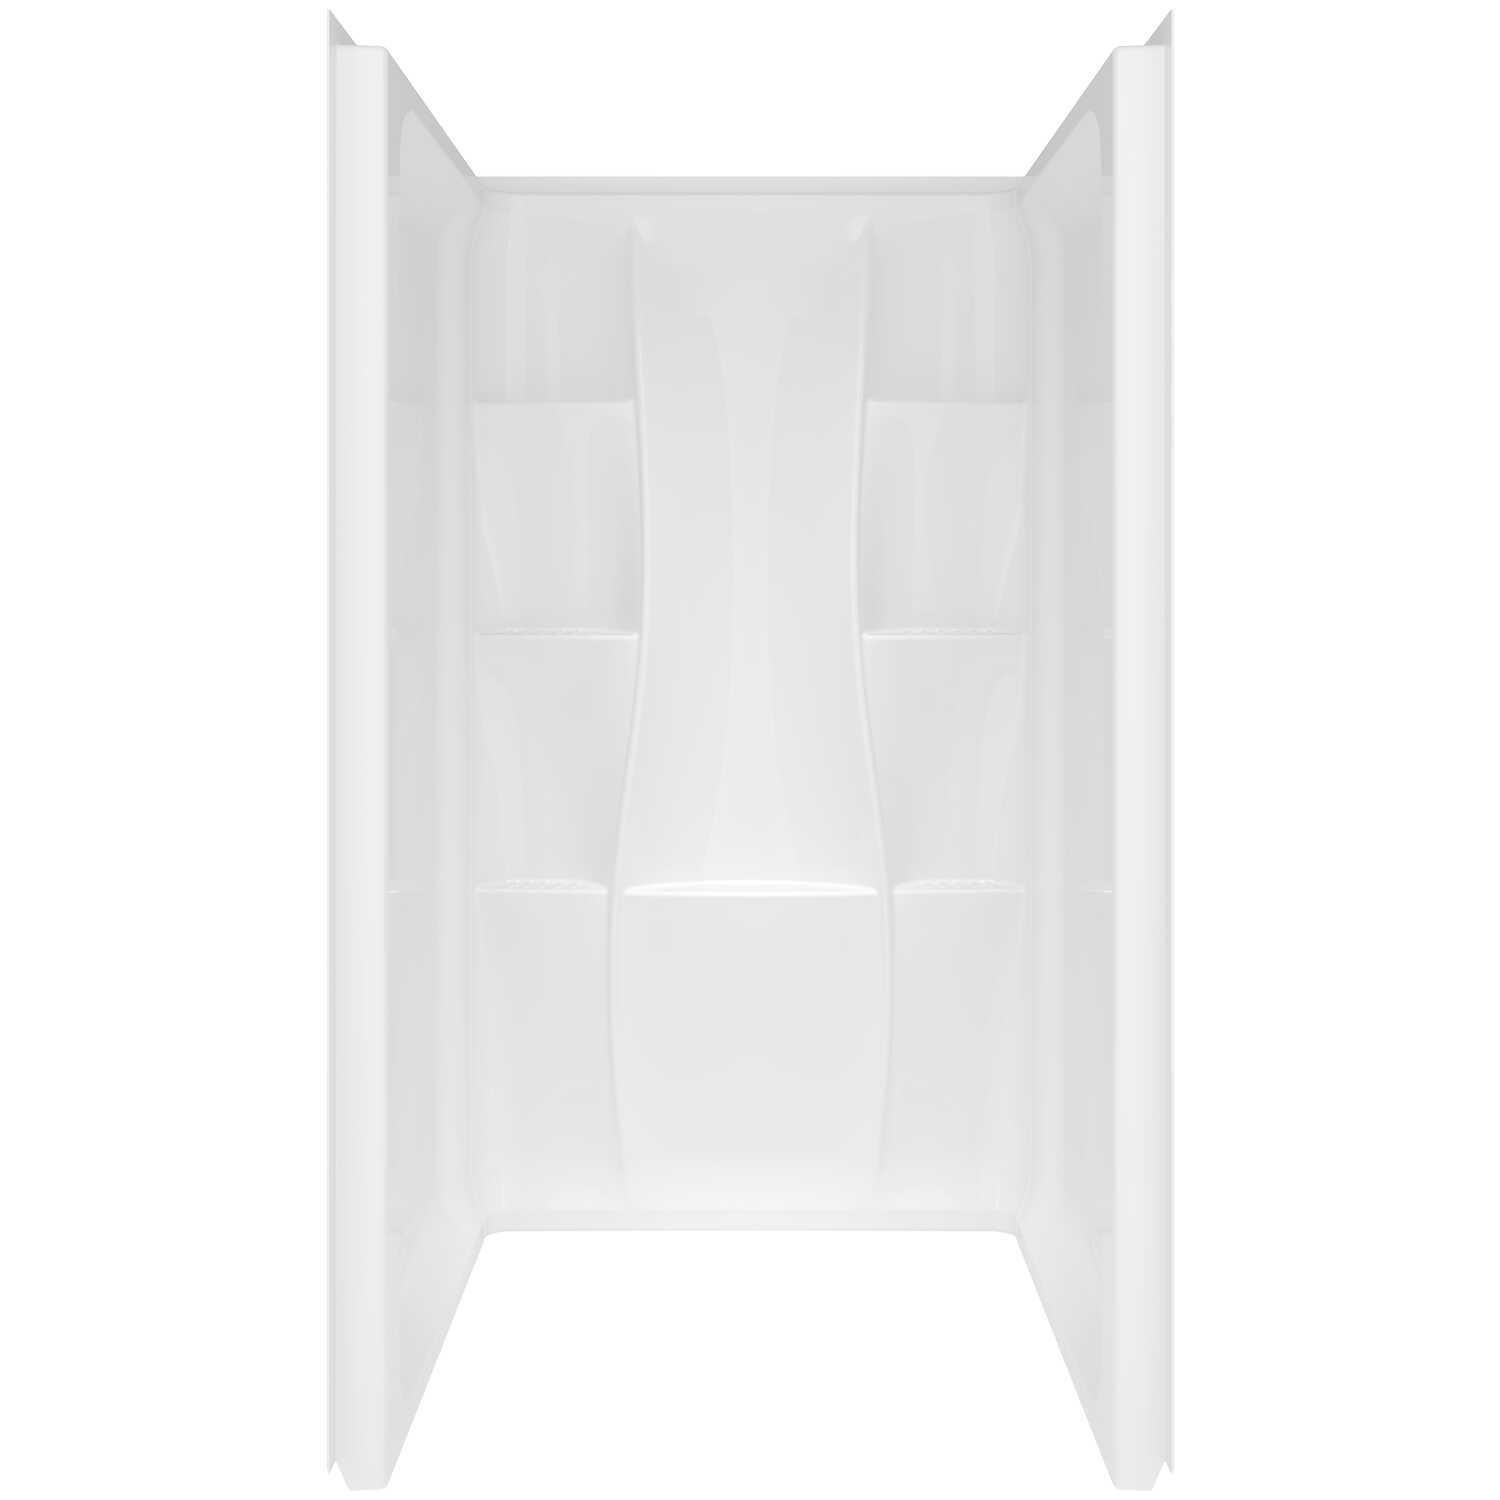 Delta Bathing System  Classic  74 in. H x 36 in. W x 36 in. L White  Rectangle  Acrylic  Shower Wall